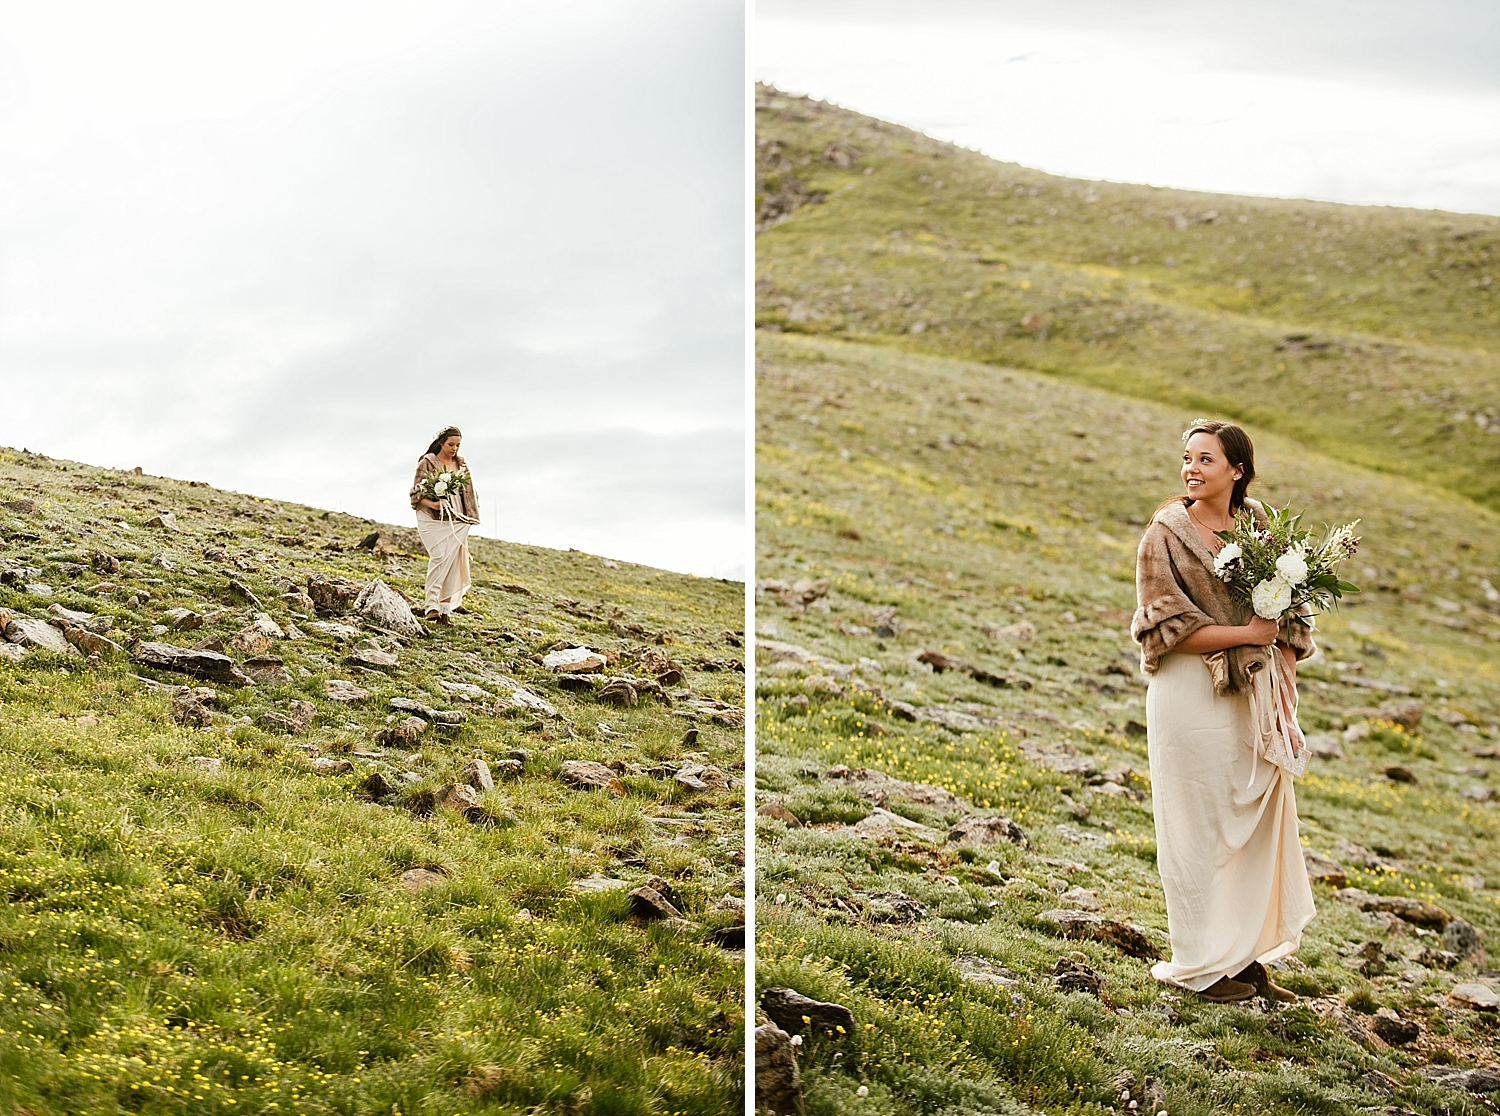 How incredible is this tundra wedding? Winter weddings have always been my favorite, but this one in particular is absolutely stunning! | Trail Ridge Road elopement photos by RMNP wedding photographer, Maddie Mae.